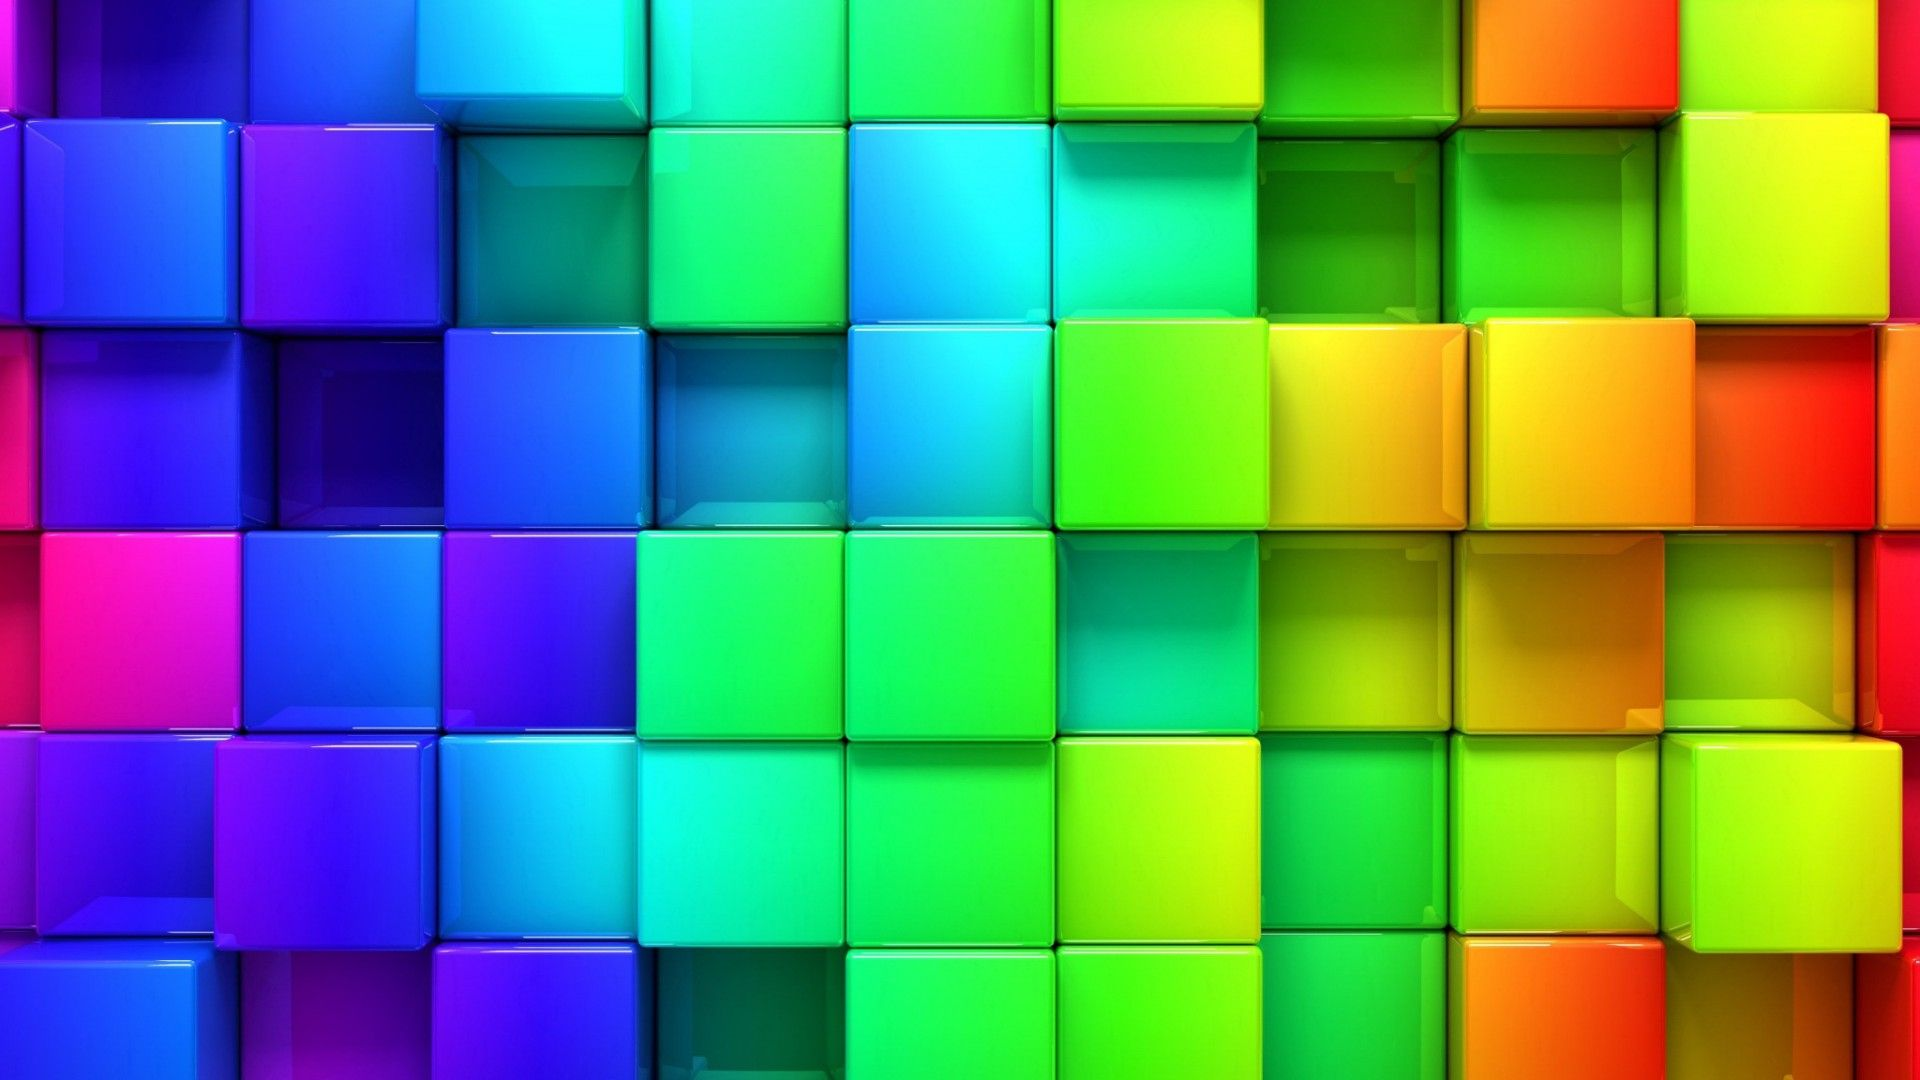 Hd wallpaper colorful - Abstract Cubes Cool Backgrond Http Wallawy Com Abstract Cubes